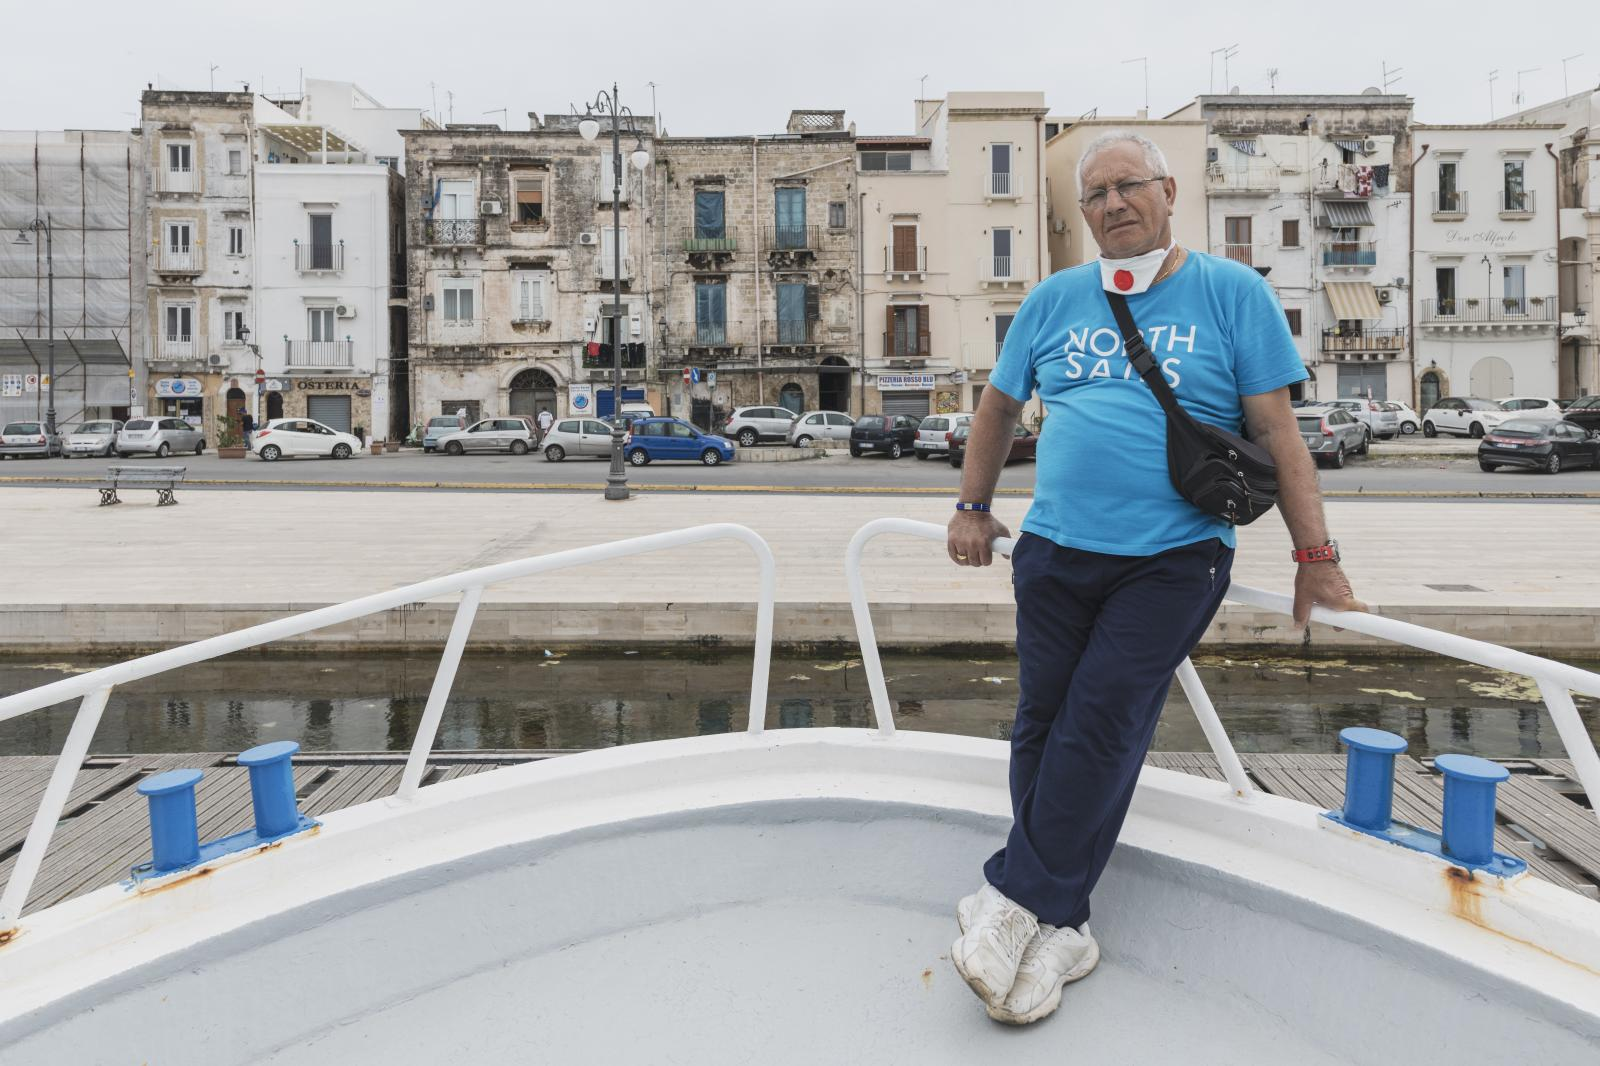 """– Cataldo Solfrizzi Cataldo has 17 brothers. Since childhood, he and them like have known only work at sea, a resource on which now Taranto has returned to focus. """"In these months, with the fish market and restaurants closed, even having the authorization to go out two times a week with our boats, to whom would we sell 70-80 kg of fish a day? Then the layoff took over, which however has not yet arrived and we will not even be able to pay the bills. I had vouchers only for a month – small stuff. If we do not recover, I will have to go and ask for money on loan and hope they will give it to me""""."""